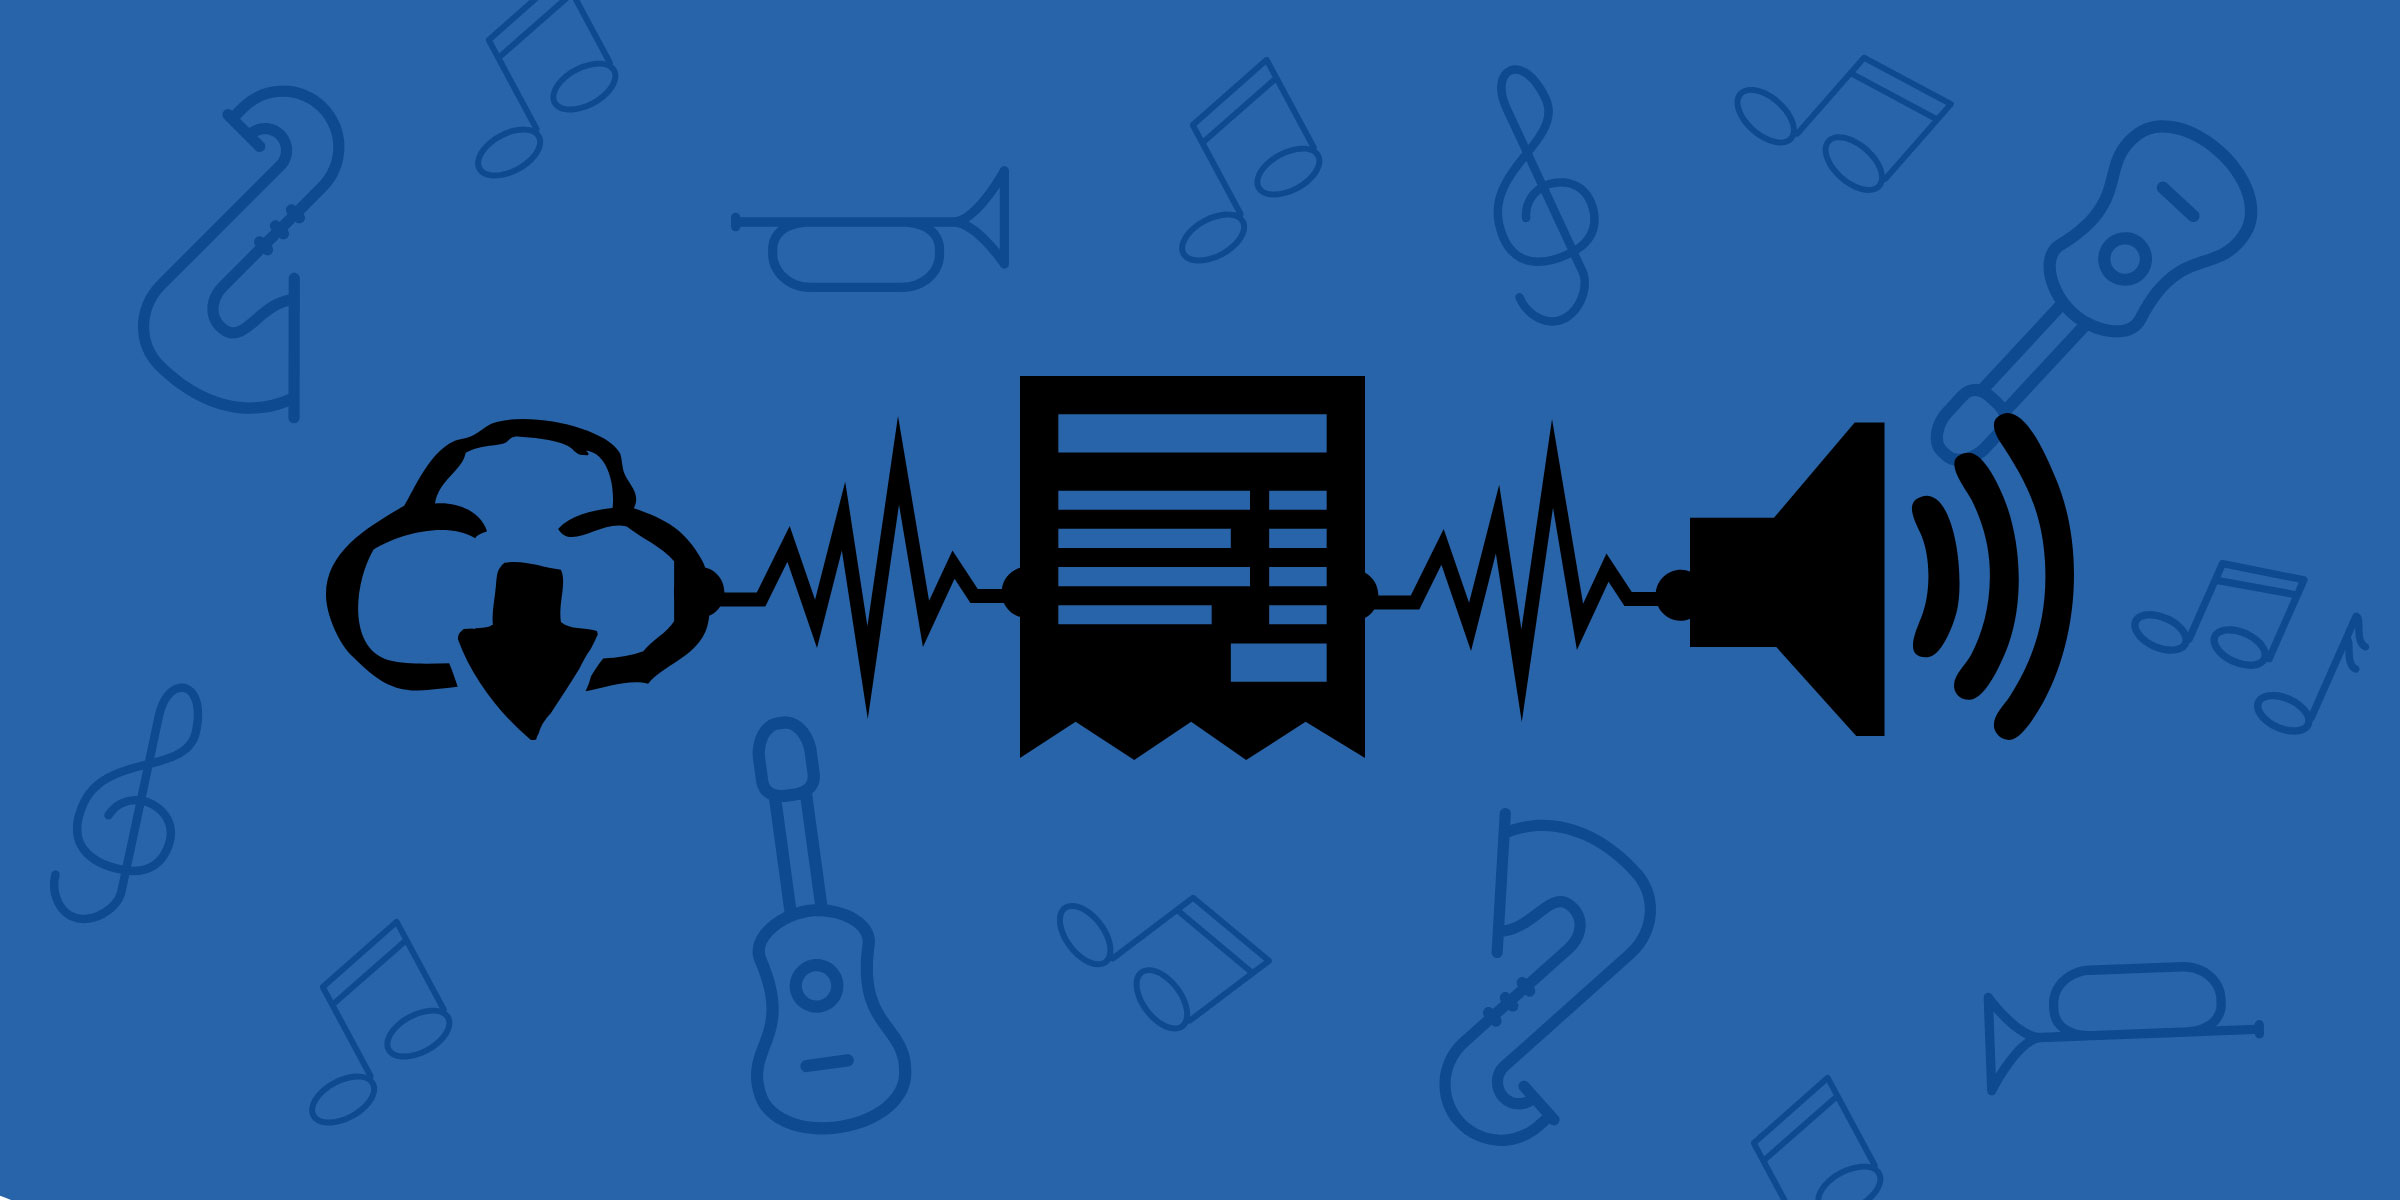 Connecting music and big data